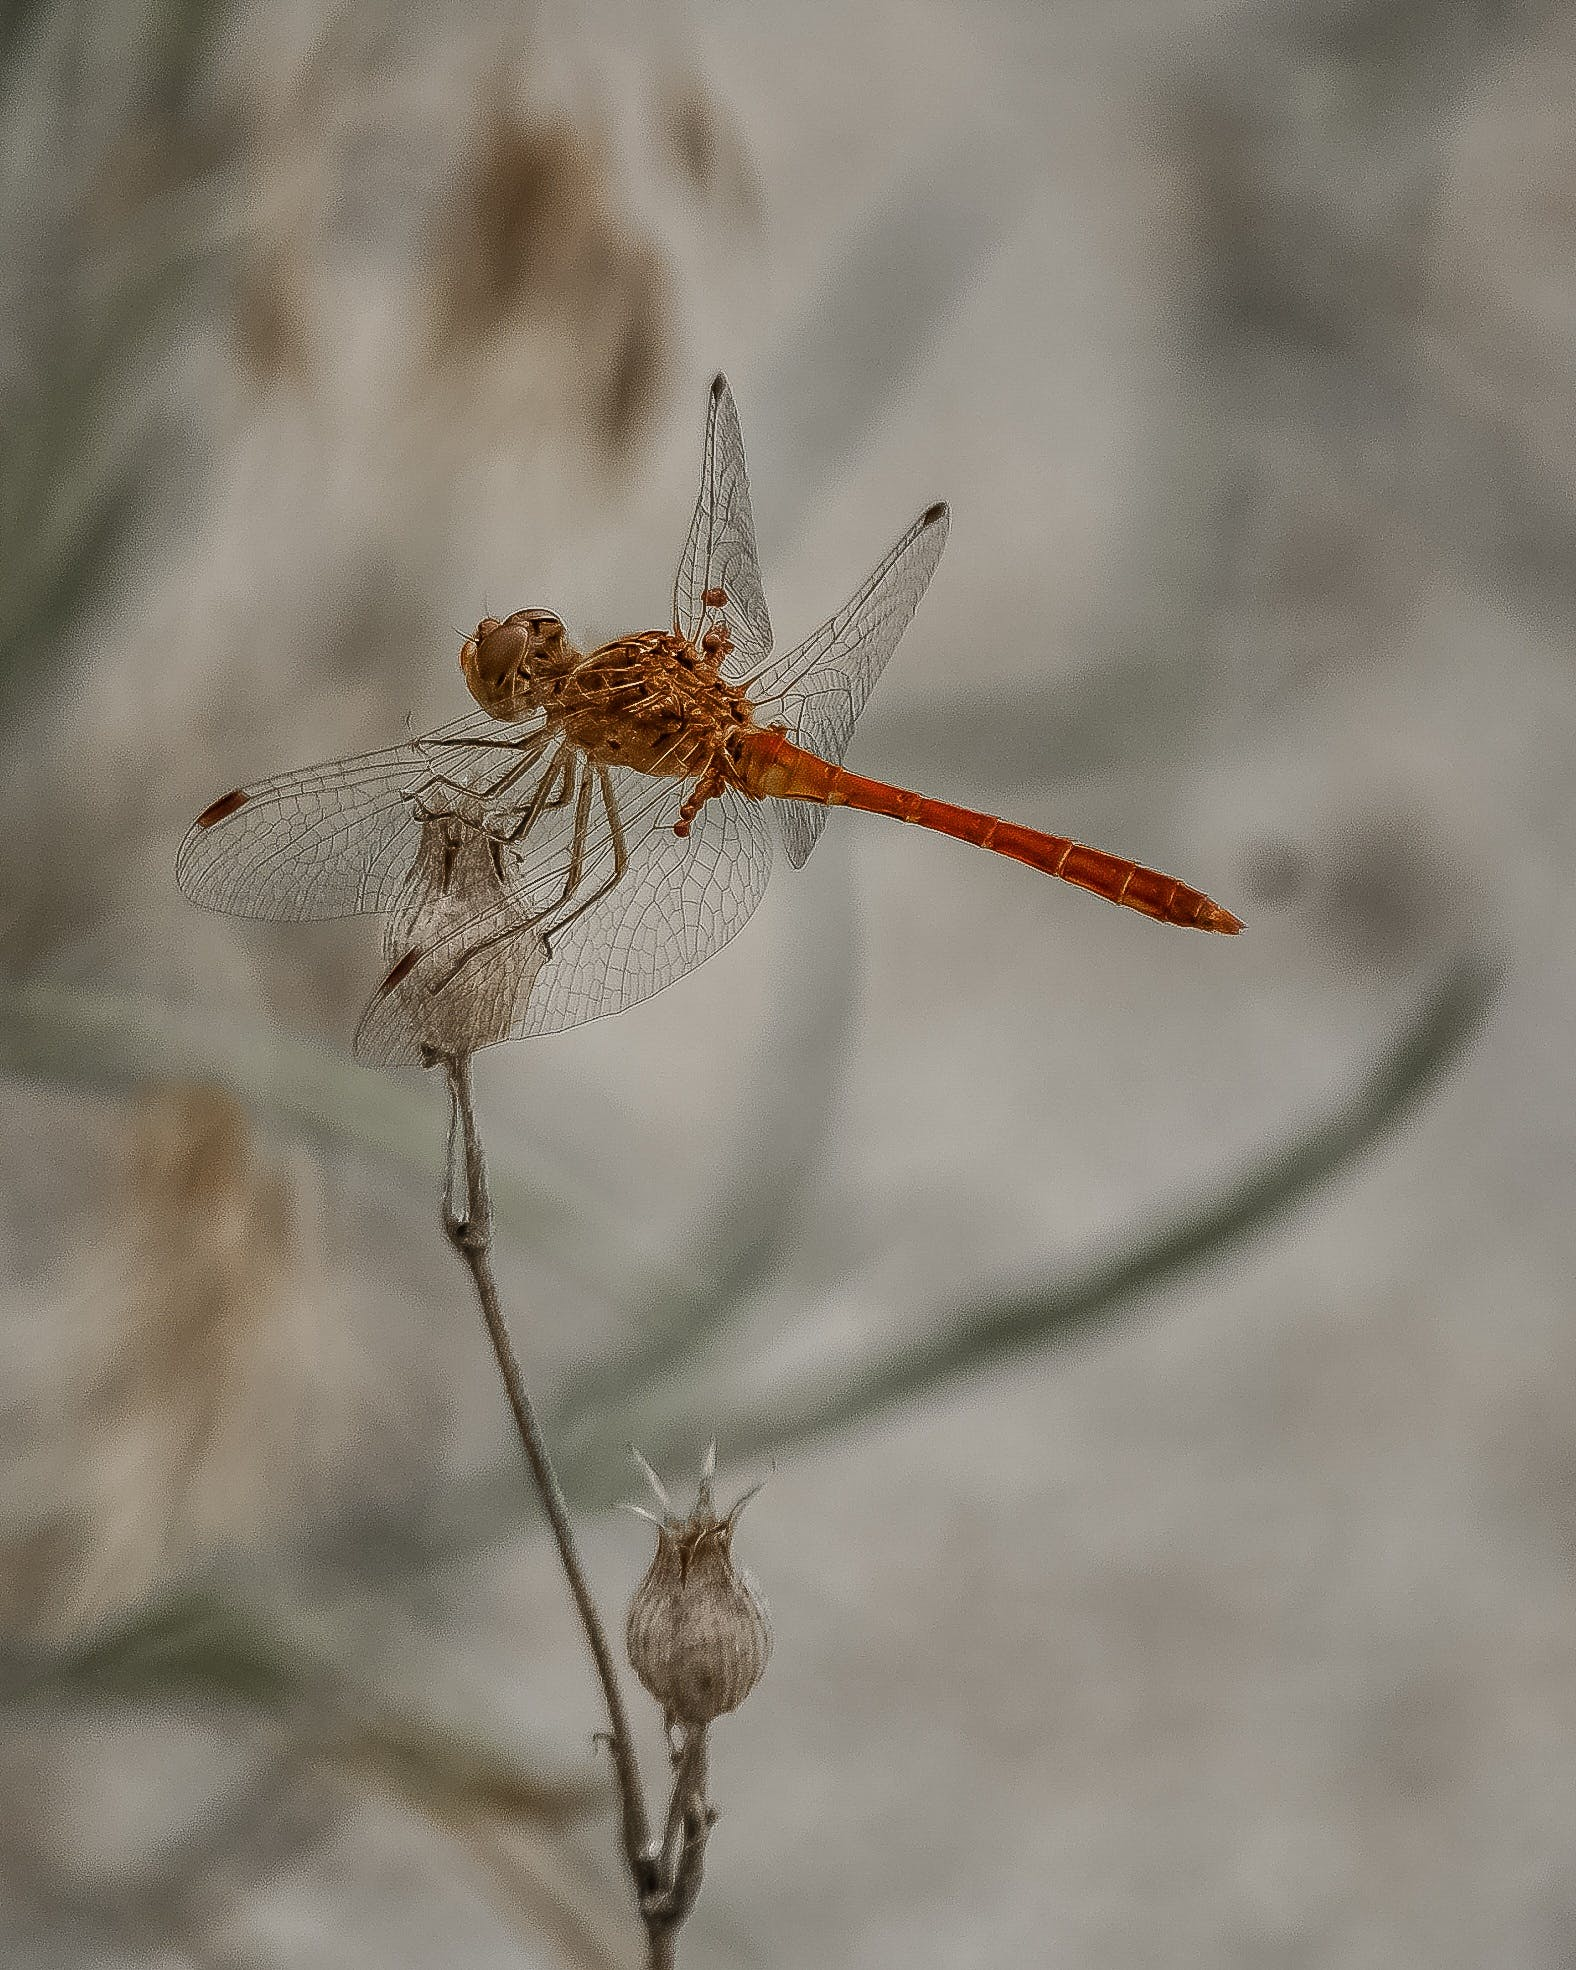 close-up, dragonfly, insect